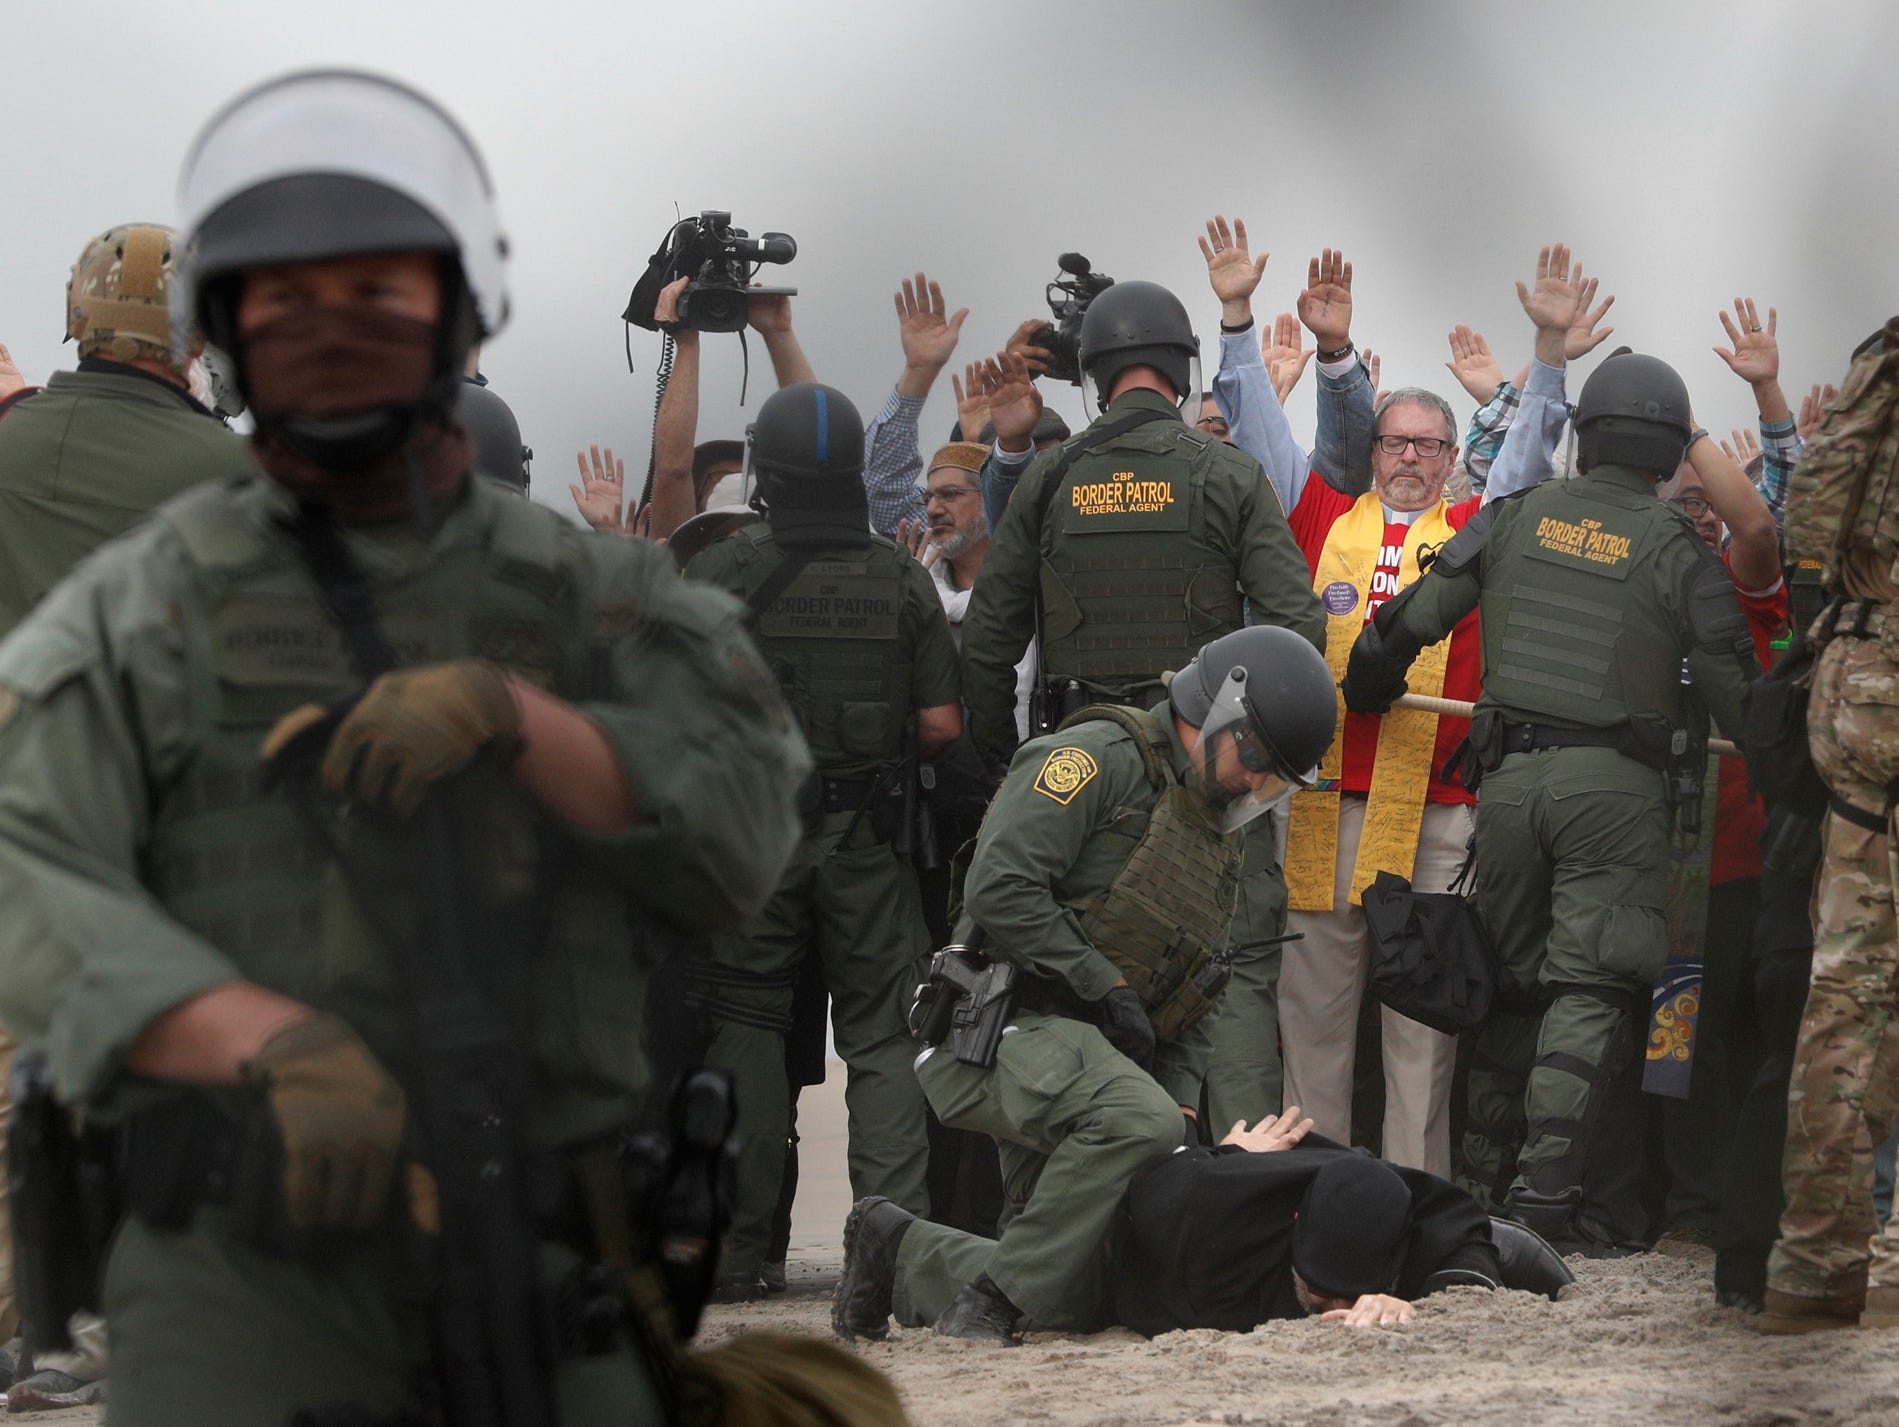 U.S. Border Patrol agents make arrests during a pro-migration protest by members of various faith groups showing support for Central American asylum-seekers who arrived in recent caravans and calling for an end to migrant detentions and deportations, in San Diego as seen through the border fence from Tijuana, Mexico, Monday, Dec. 10, 2018. Dozens of protestors were arrested for trespassing as they tried to approach the border wall, and one person for assaulting an officer. (AP Photo/Rebecca Blackwell)